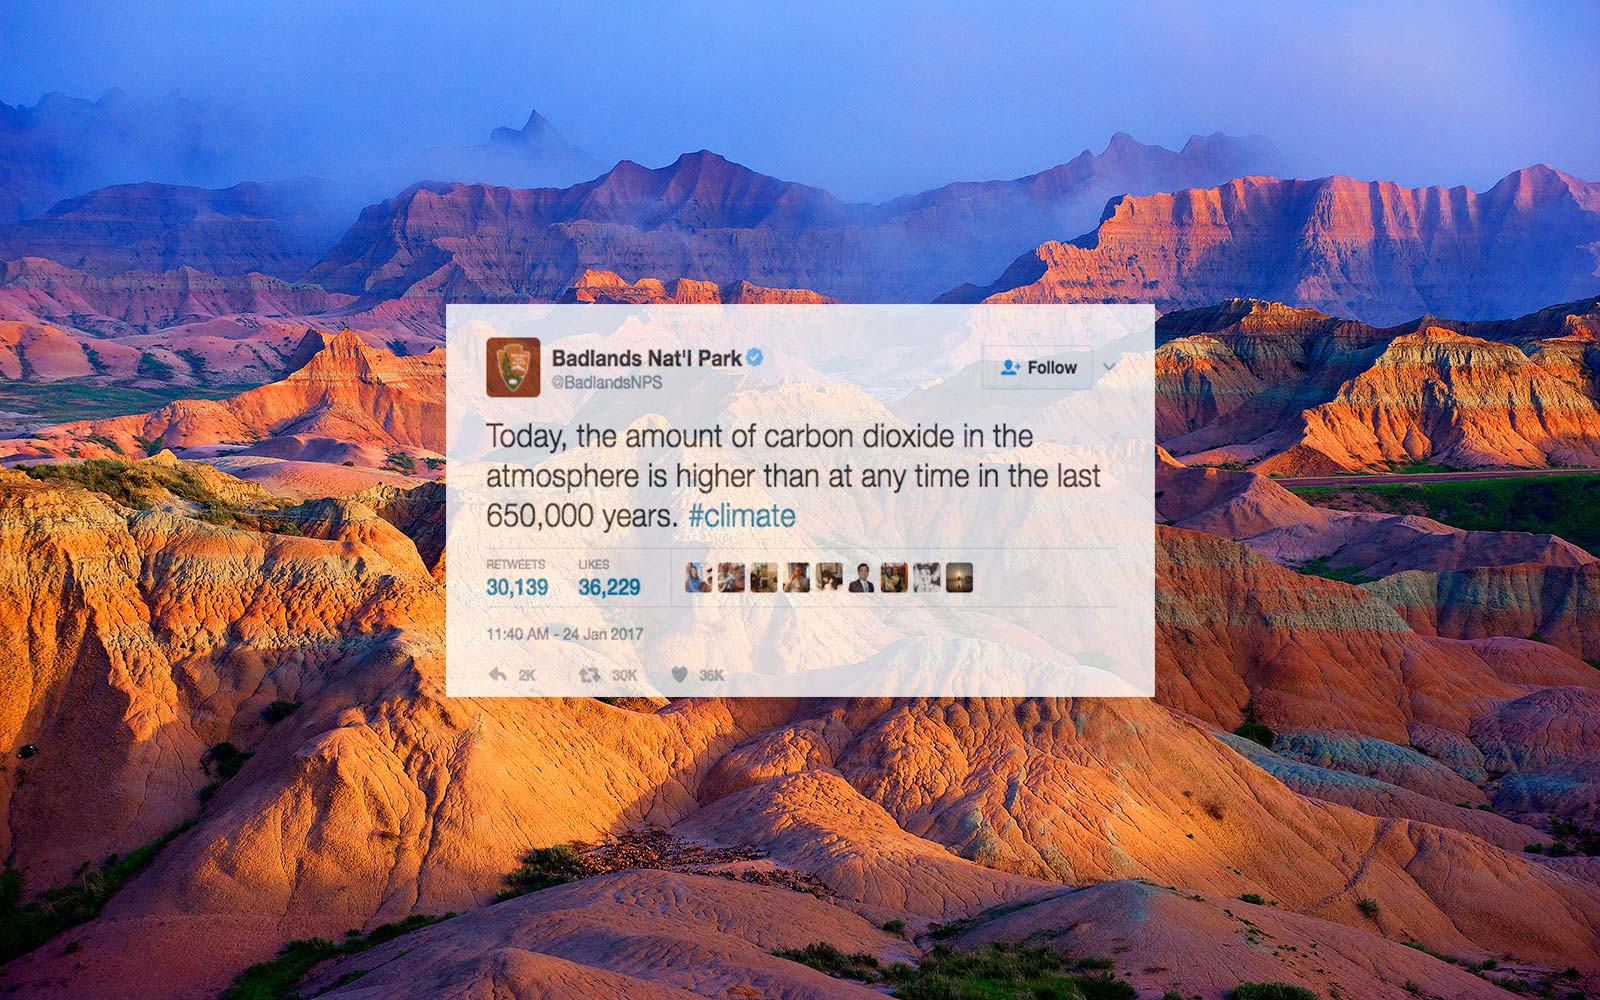 National Park's Tweets About Climate Change Start Controversy